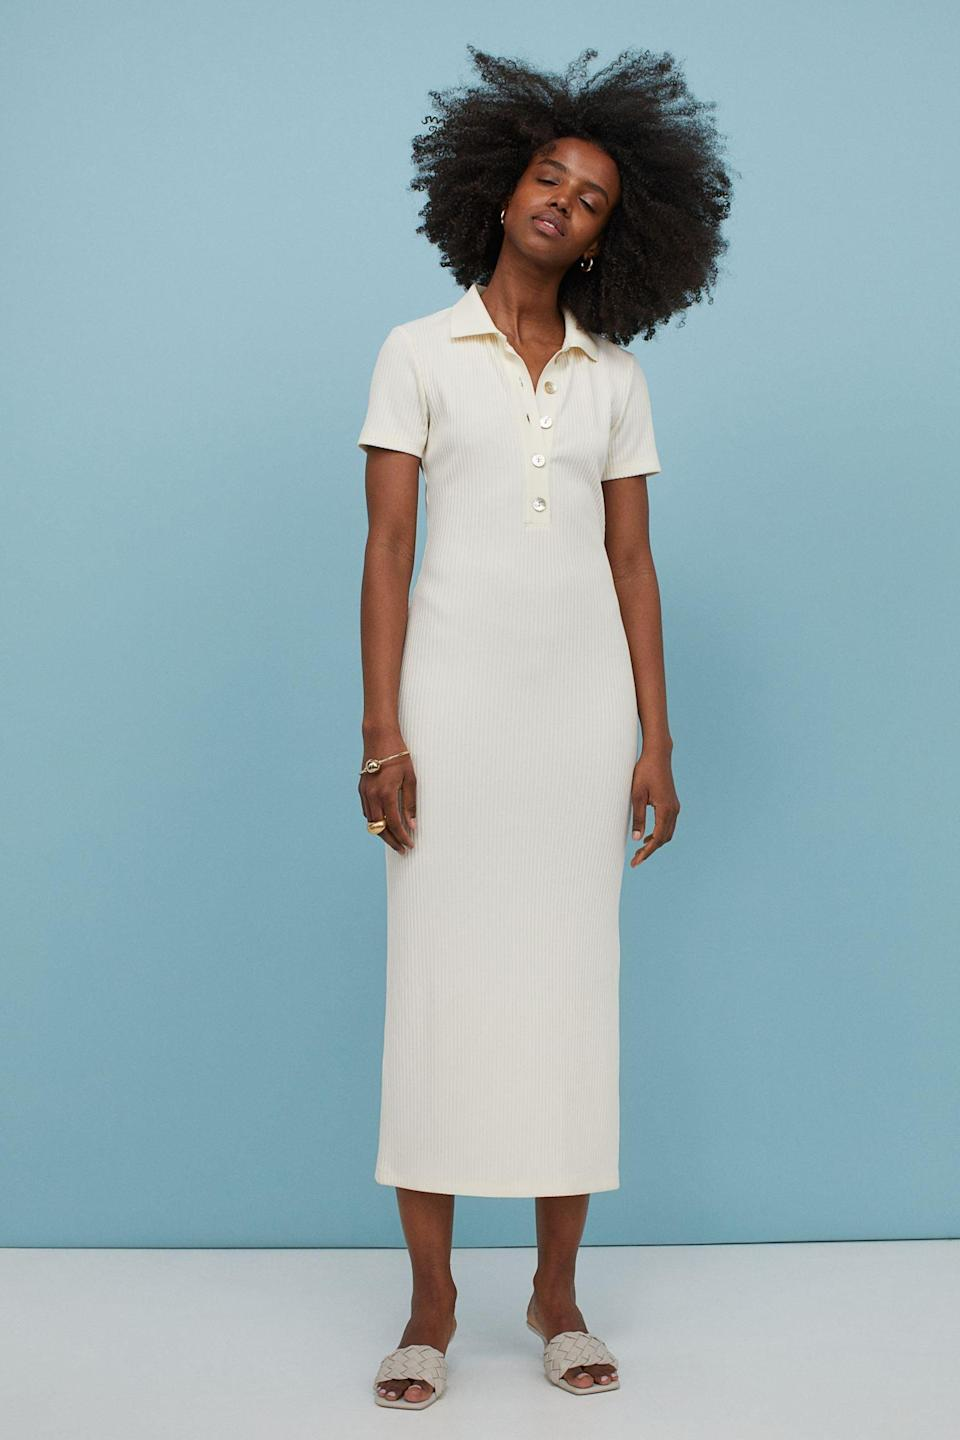 <p>This <span>H&amp;M Collared Ribbed Dress</span> ($42, originally $50) blends style and comfort very well. It looks modern, polished, and extremely wearable.</p>